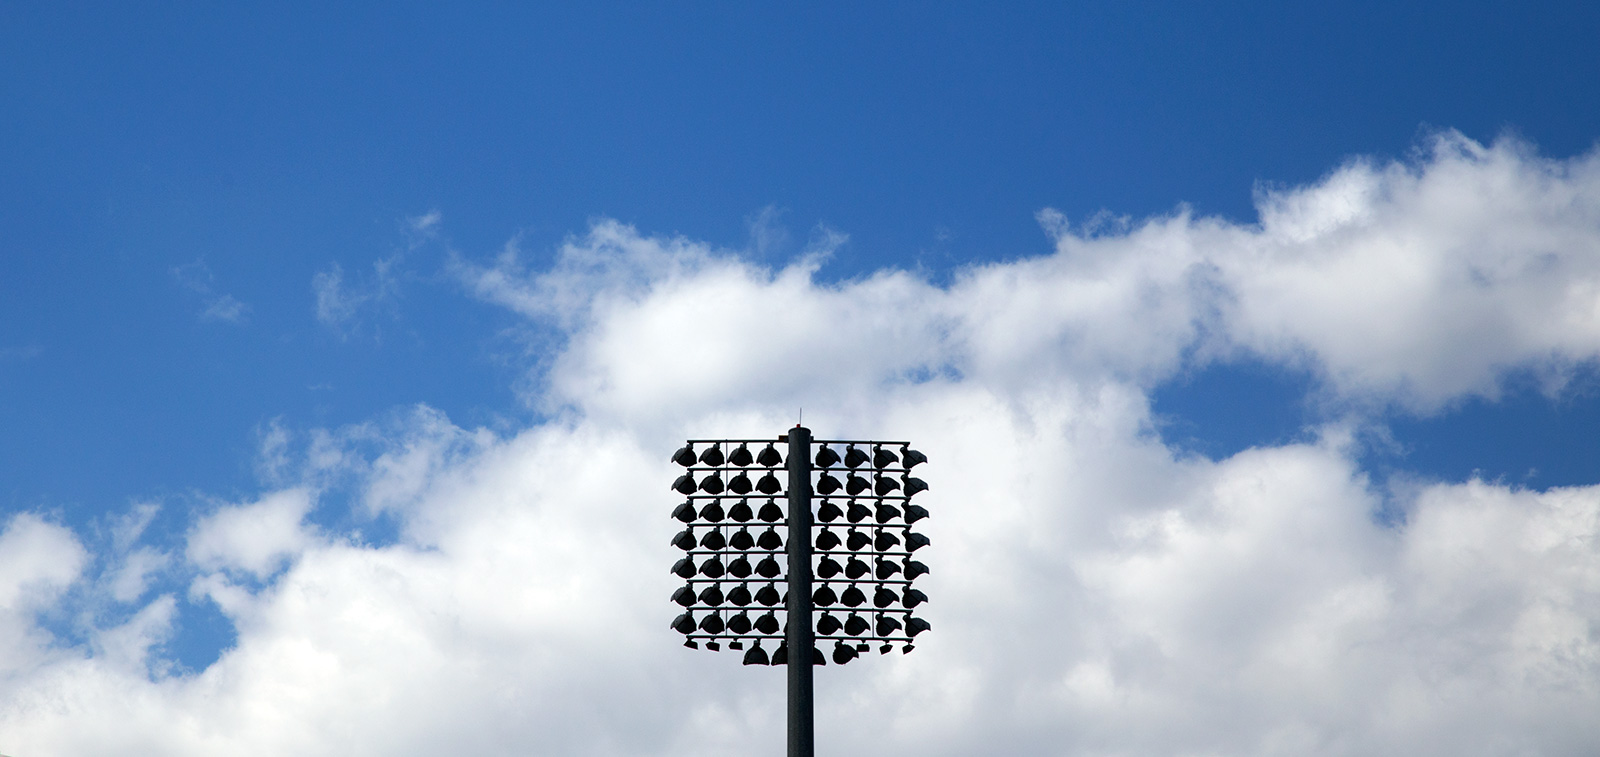 20140720. A silhouette of sport field lights against the sky. Mi